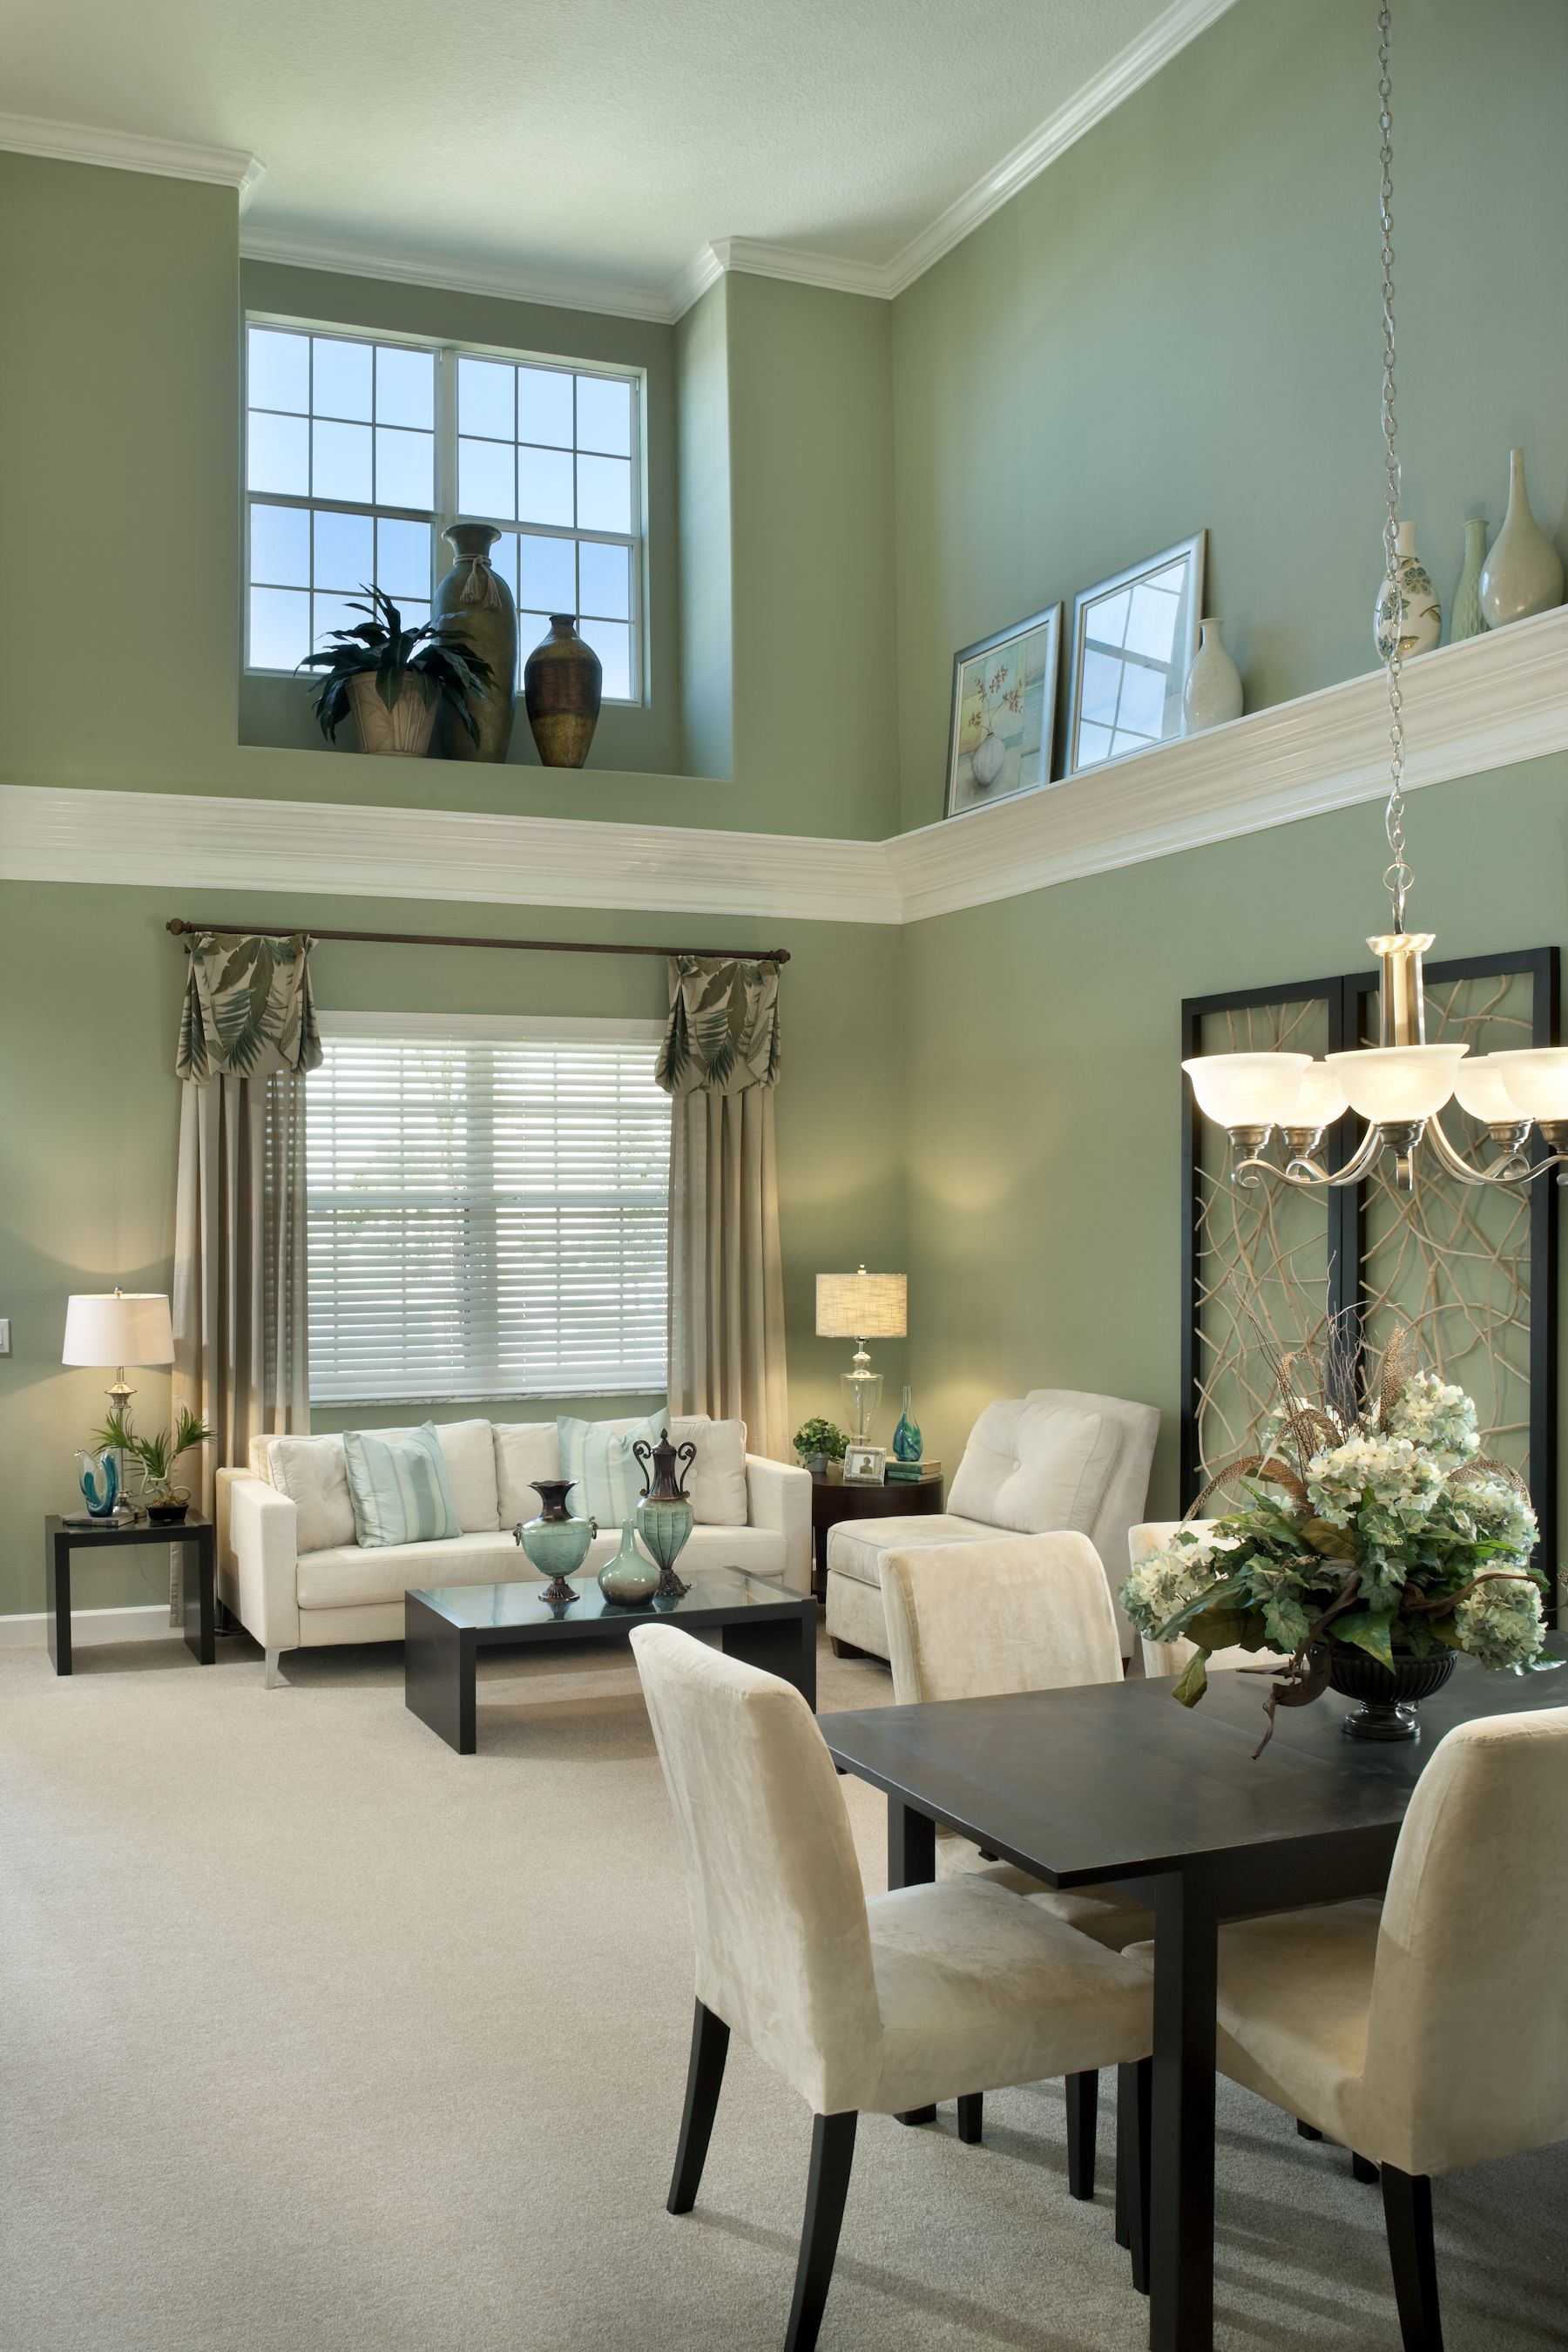 Your Model Home: The High Ceilings In The Truman Model Give You More Room